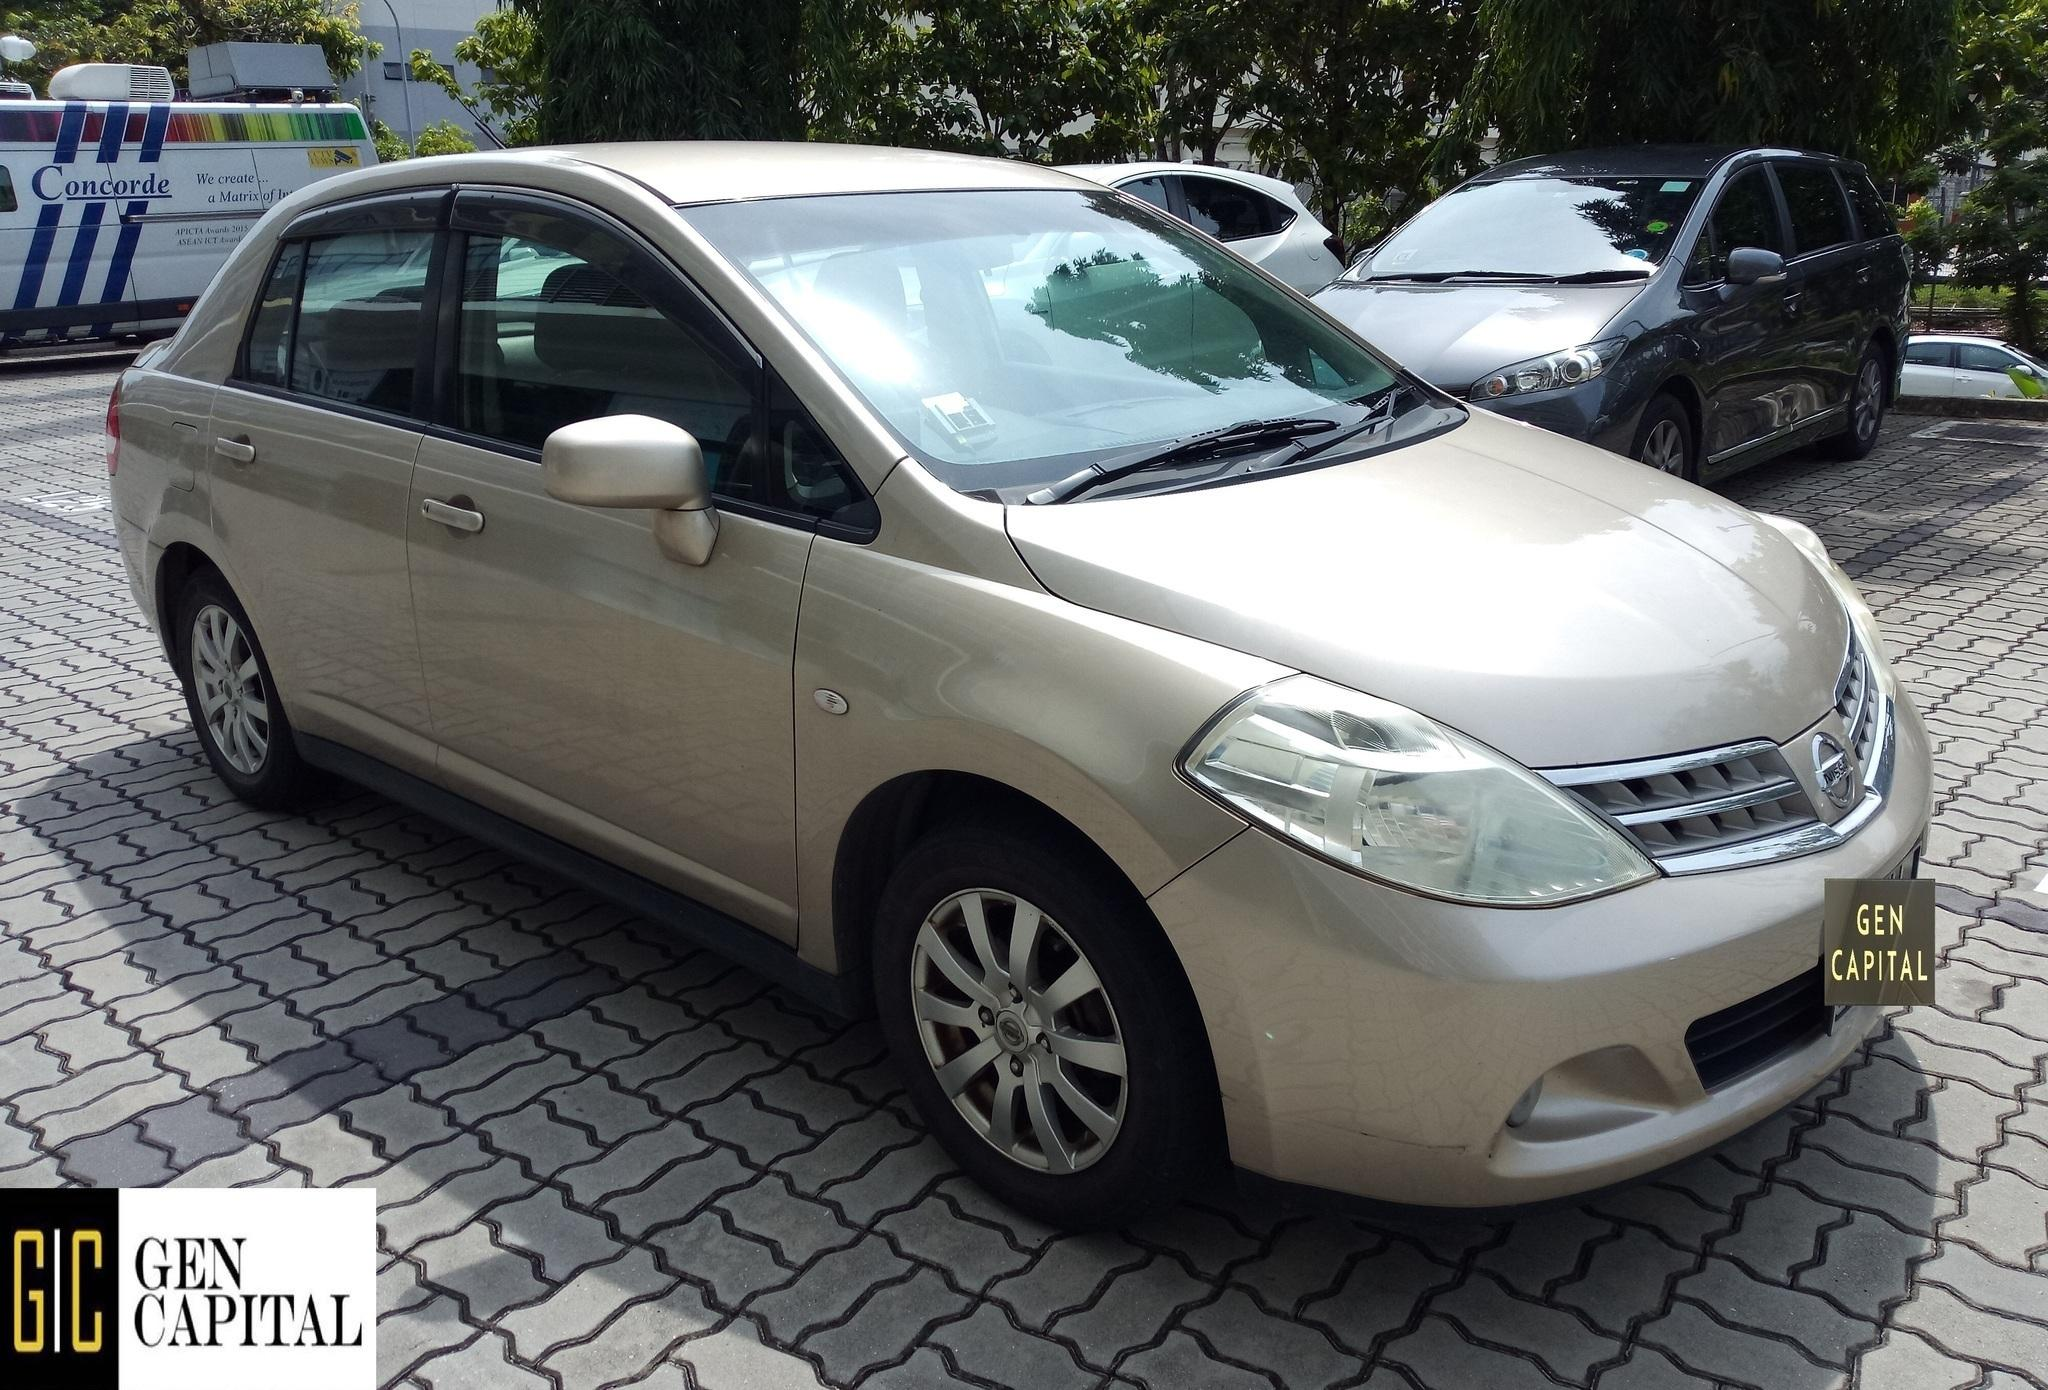 Nissan Latio - Many ranges of car to choose from, in very good condition!